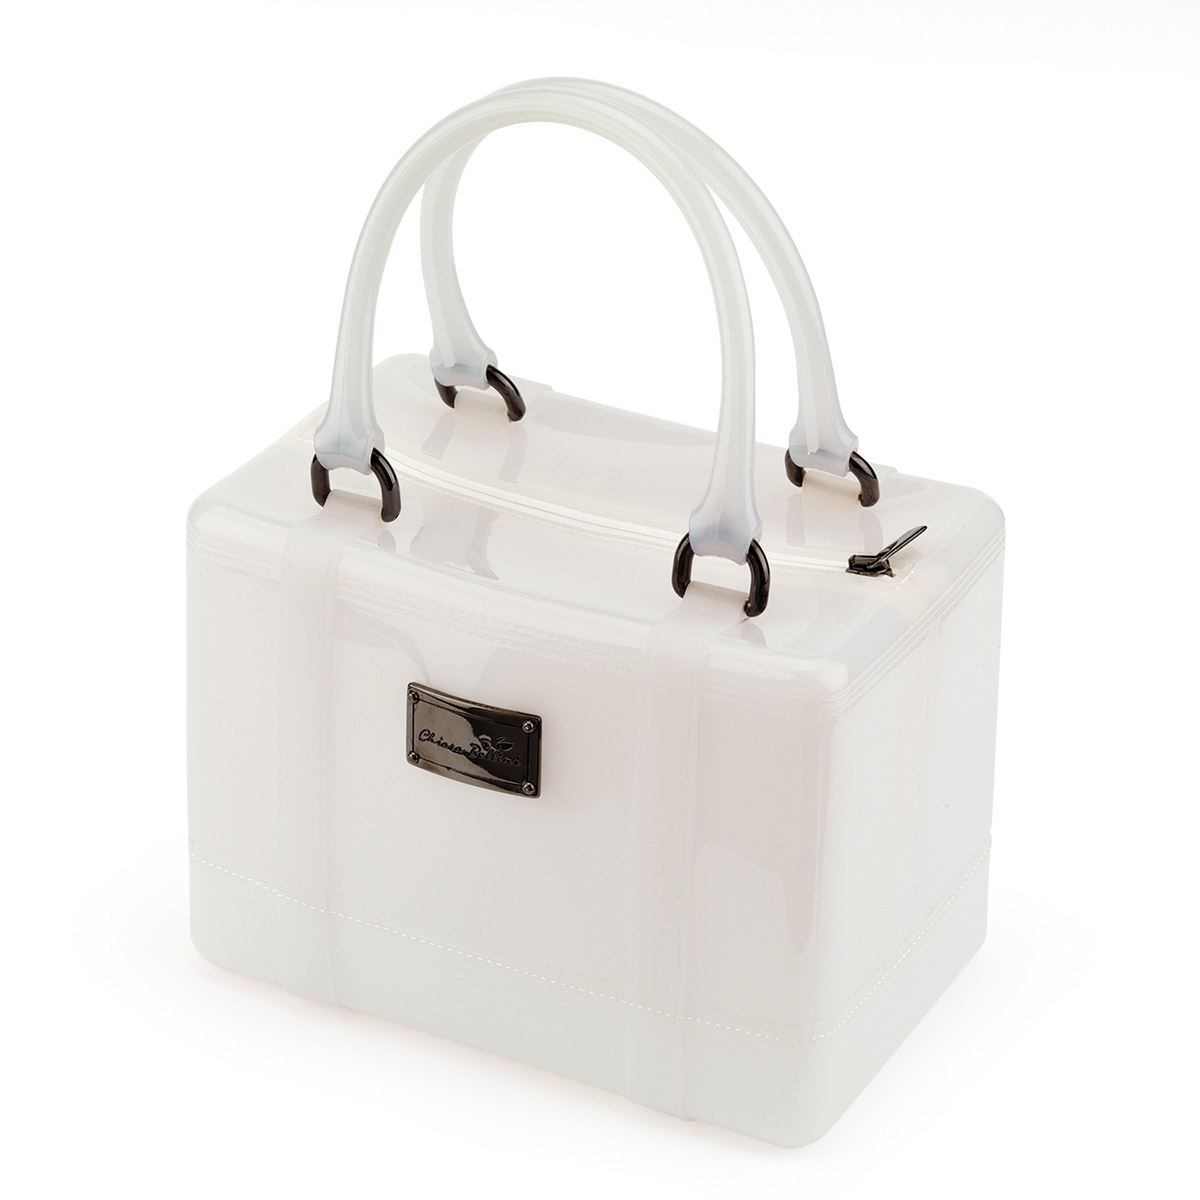 Borsa a bauletto in Pvc